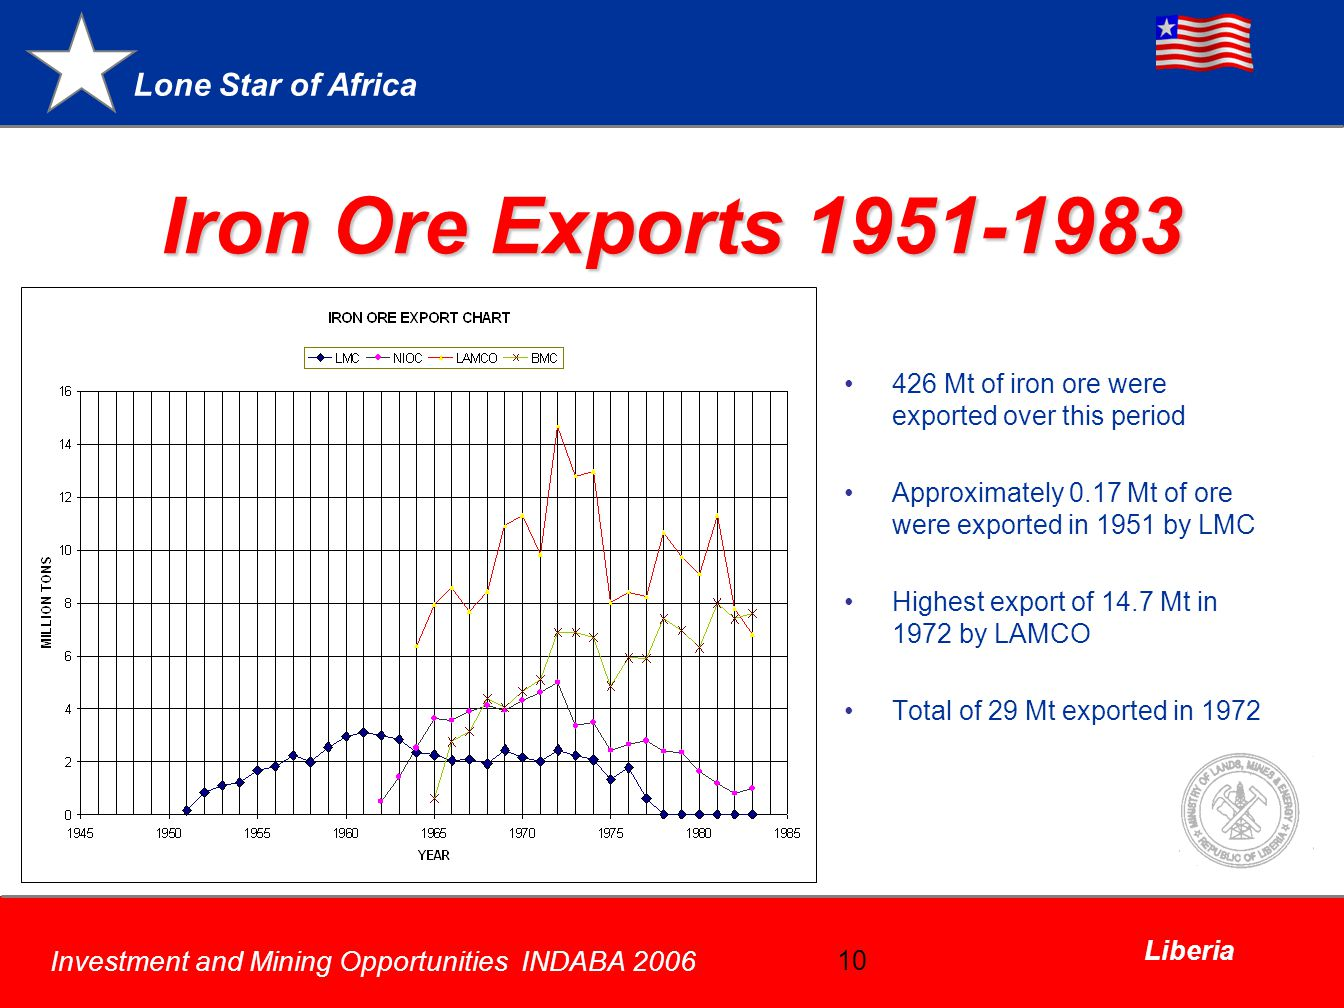 Iron Ore Exports 1951-1983 426 Mt of iron ore were exported over this period. Approximately 0.17 Mt of ore were exported in 1951 by LMC.